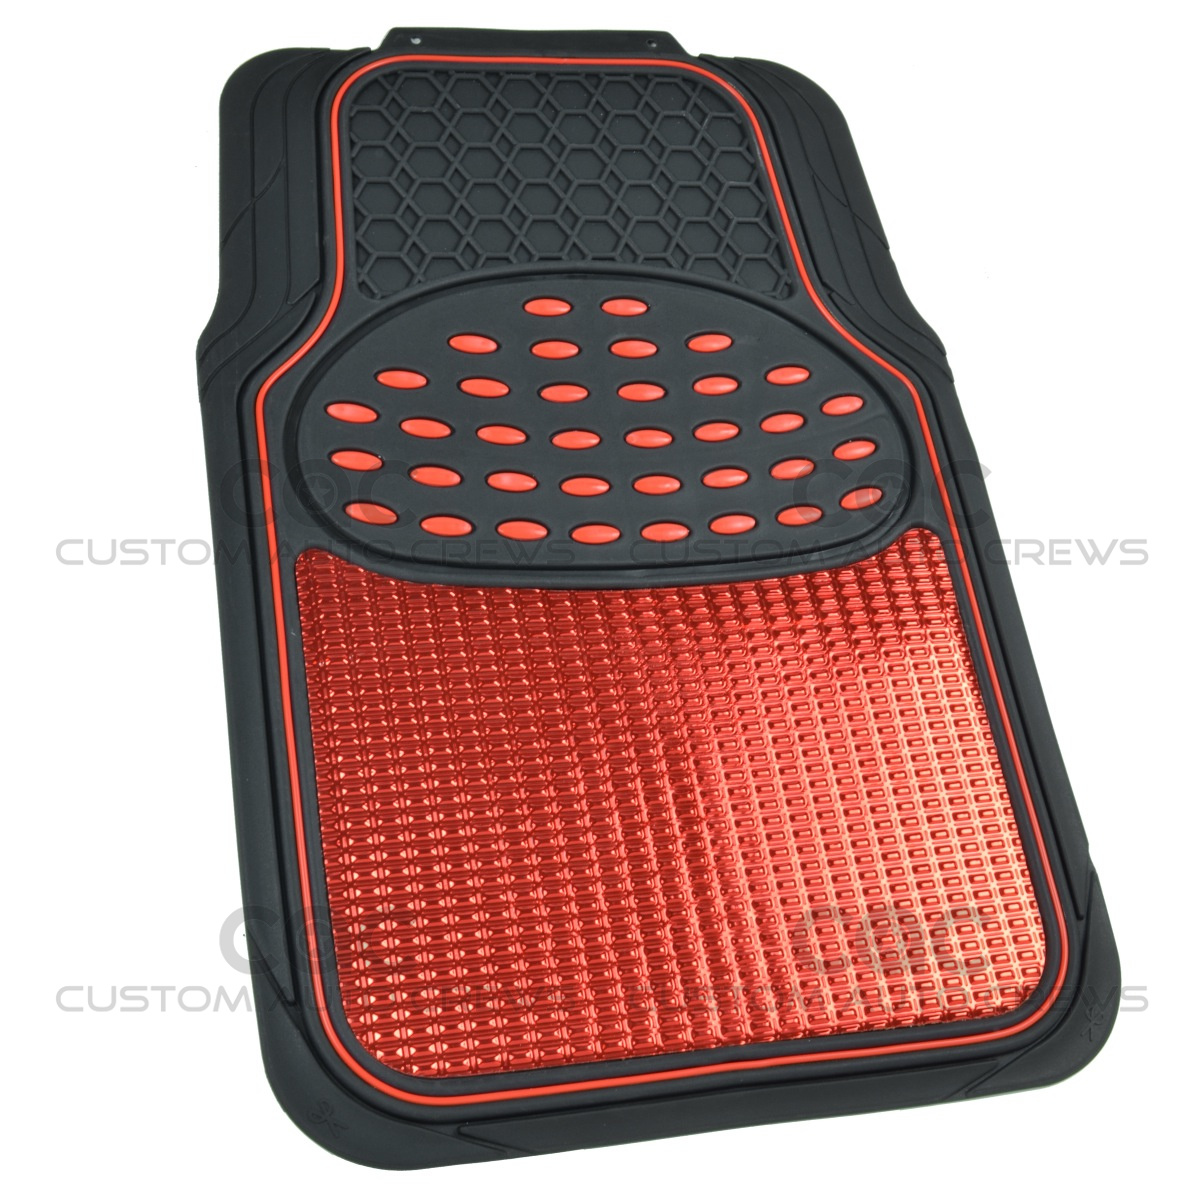 red black metallic design rubber floor mats car suv 4pc front rear floor mats carpets. Black Bedroom Furniture Sets. Home Design Ideas